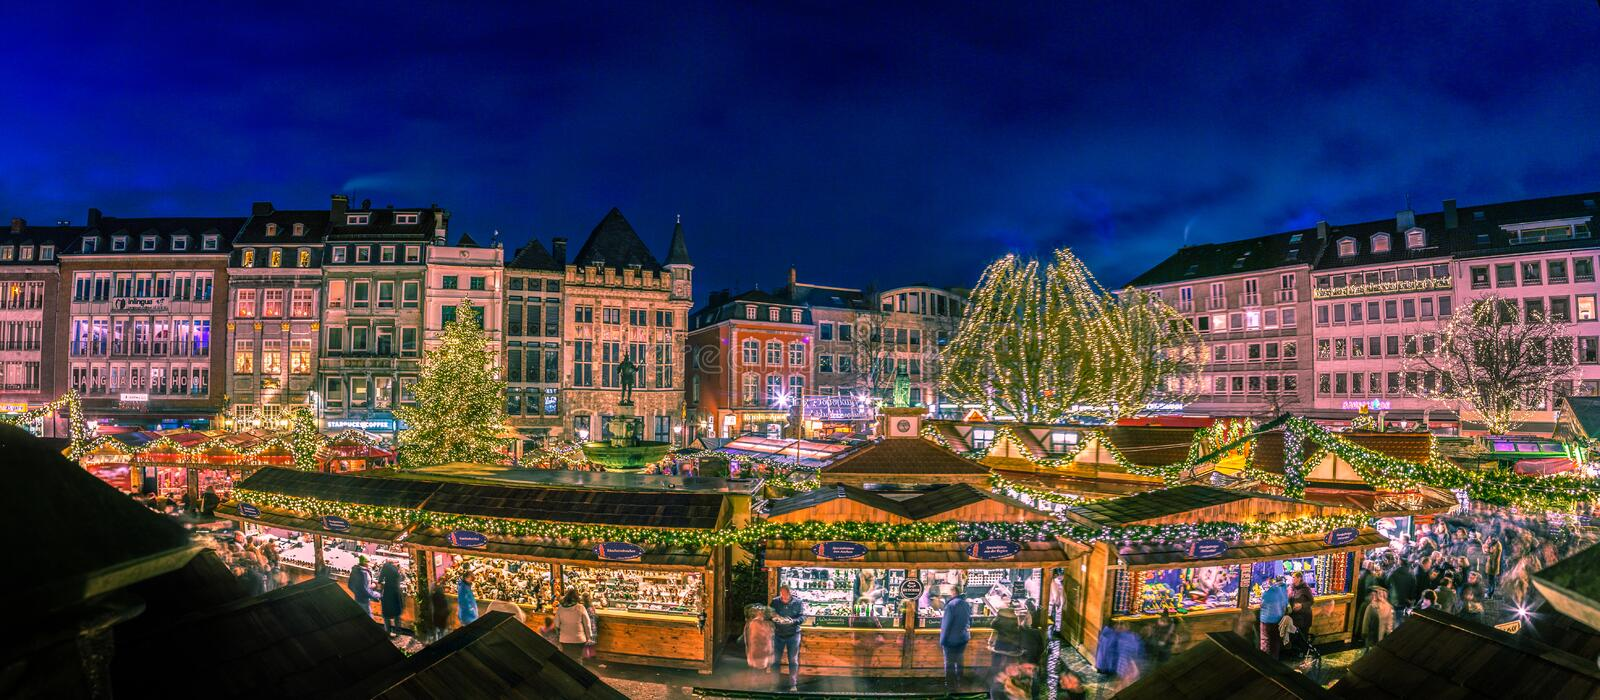 Aachen Christmas village. Squares and streets round the cathedral and the Aachen Town Hall are transformed into a paradise of lights and colors